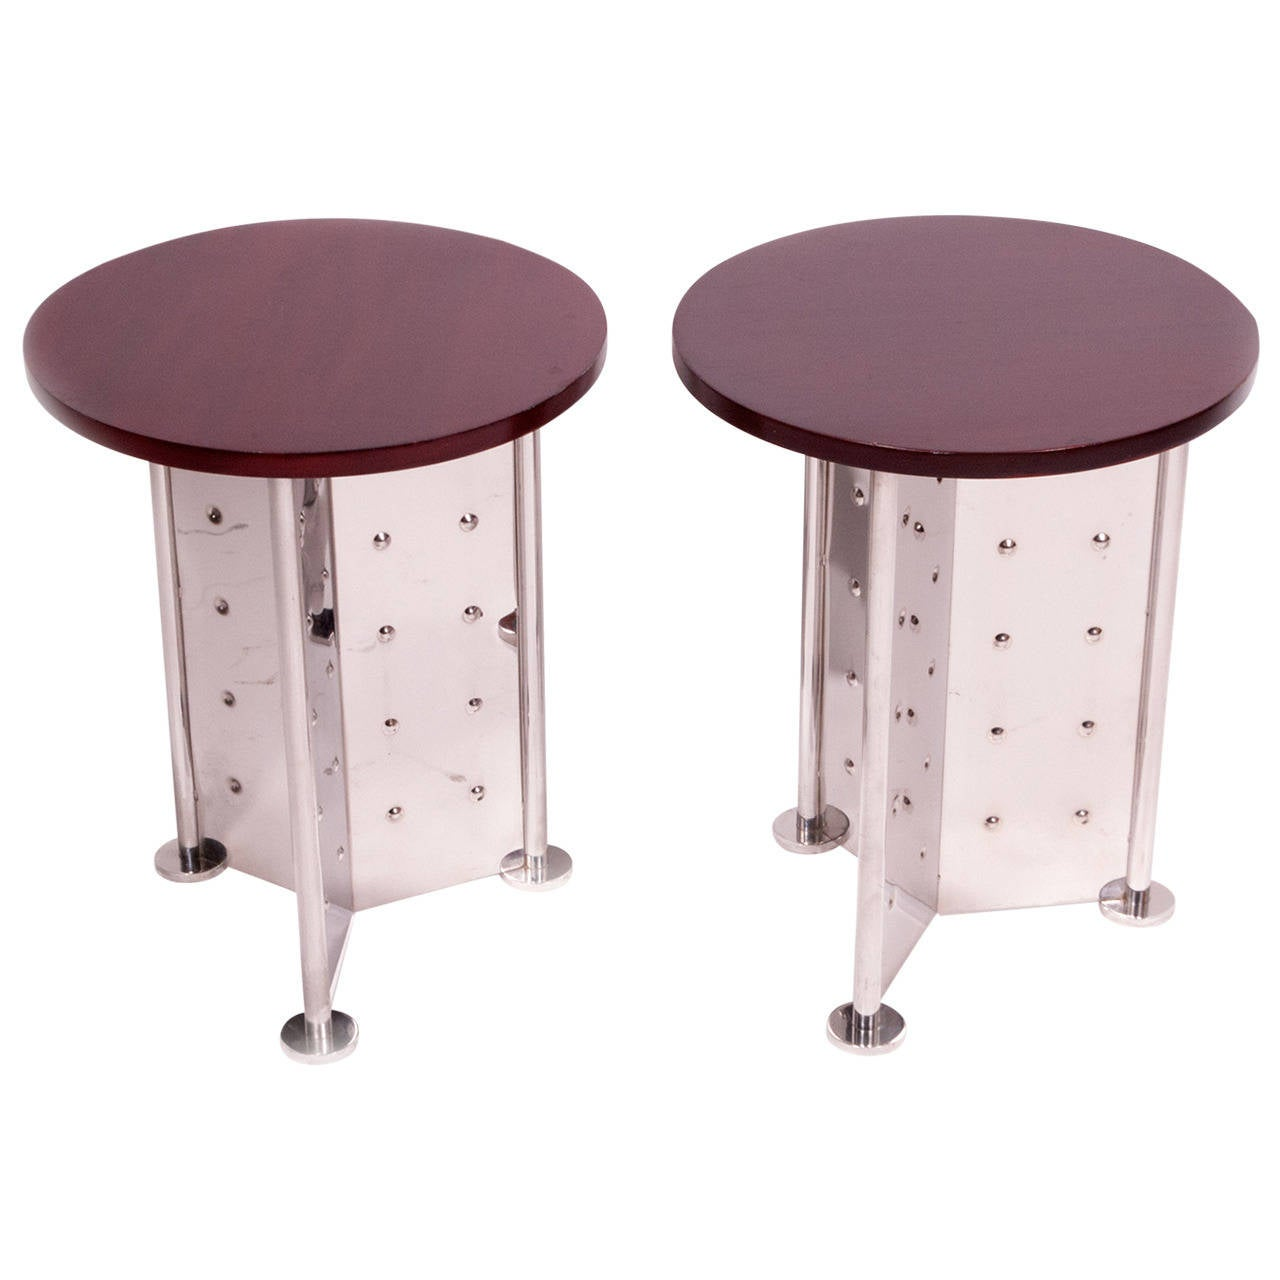 Pair of side tables by philippe starck for the royalton hotel at 1stdibs for Philippe starck tables